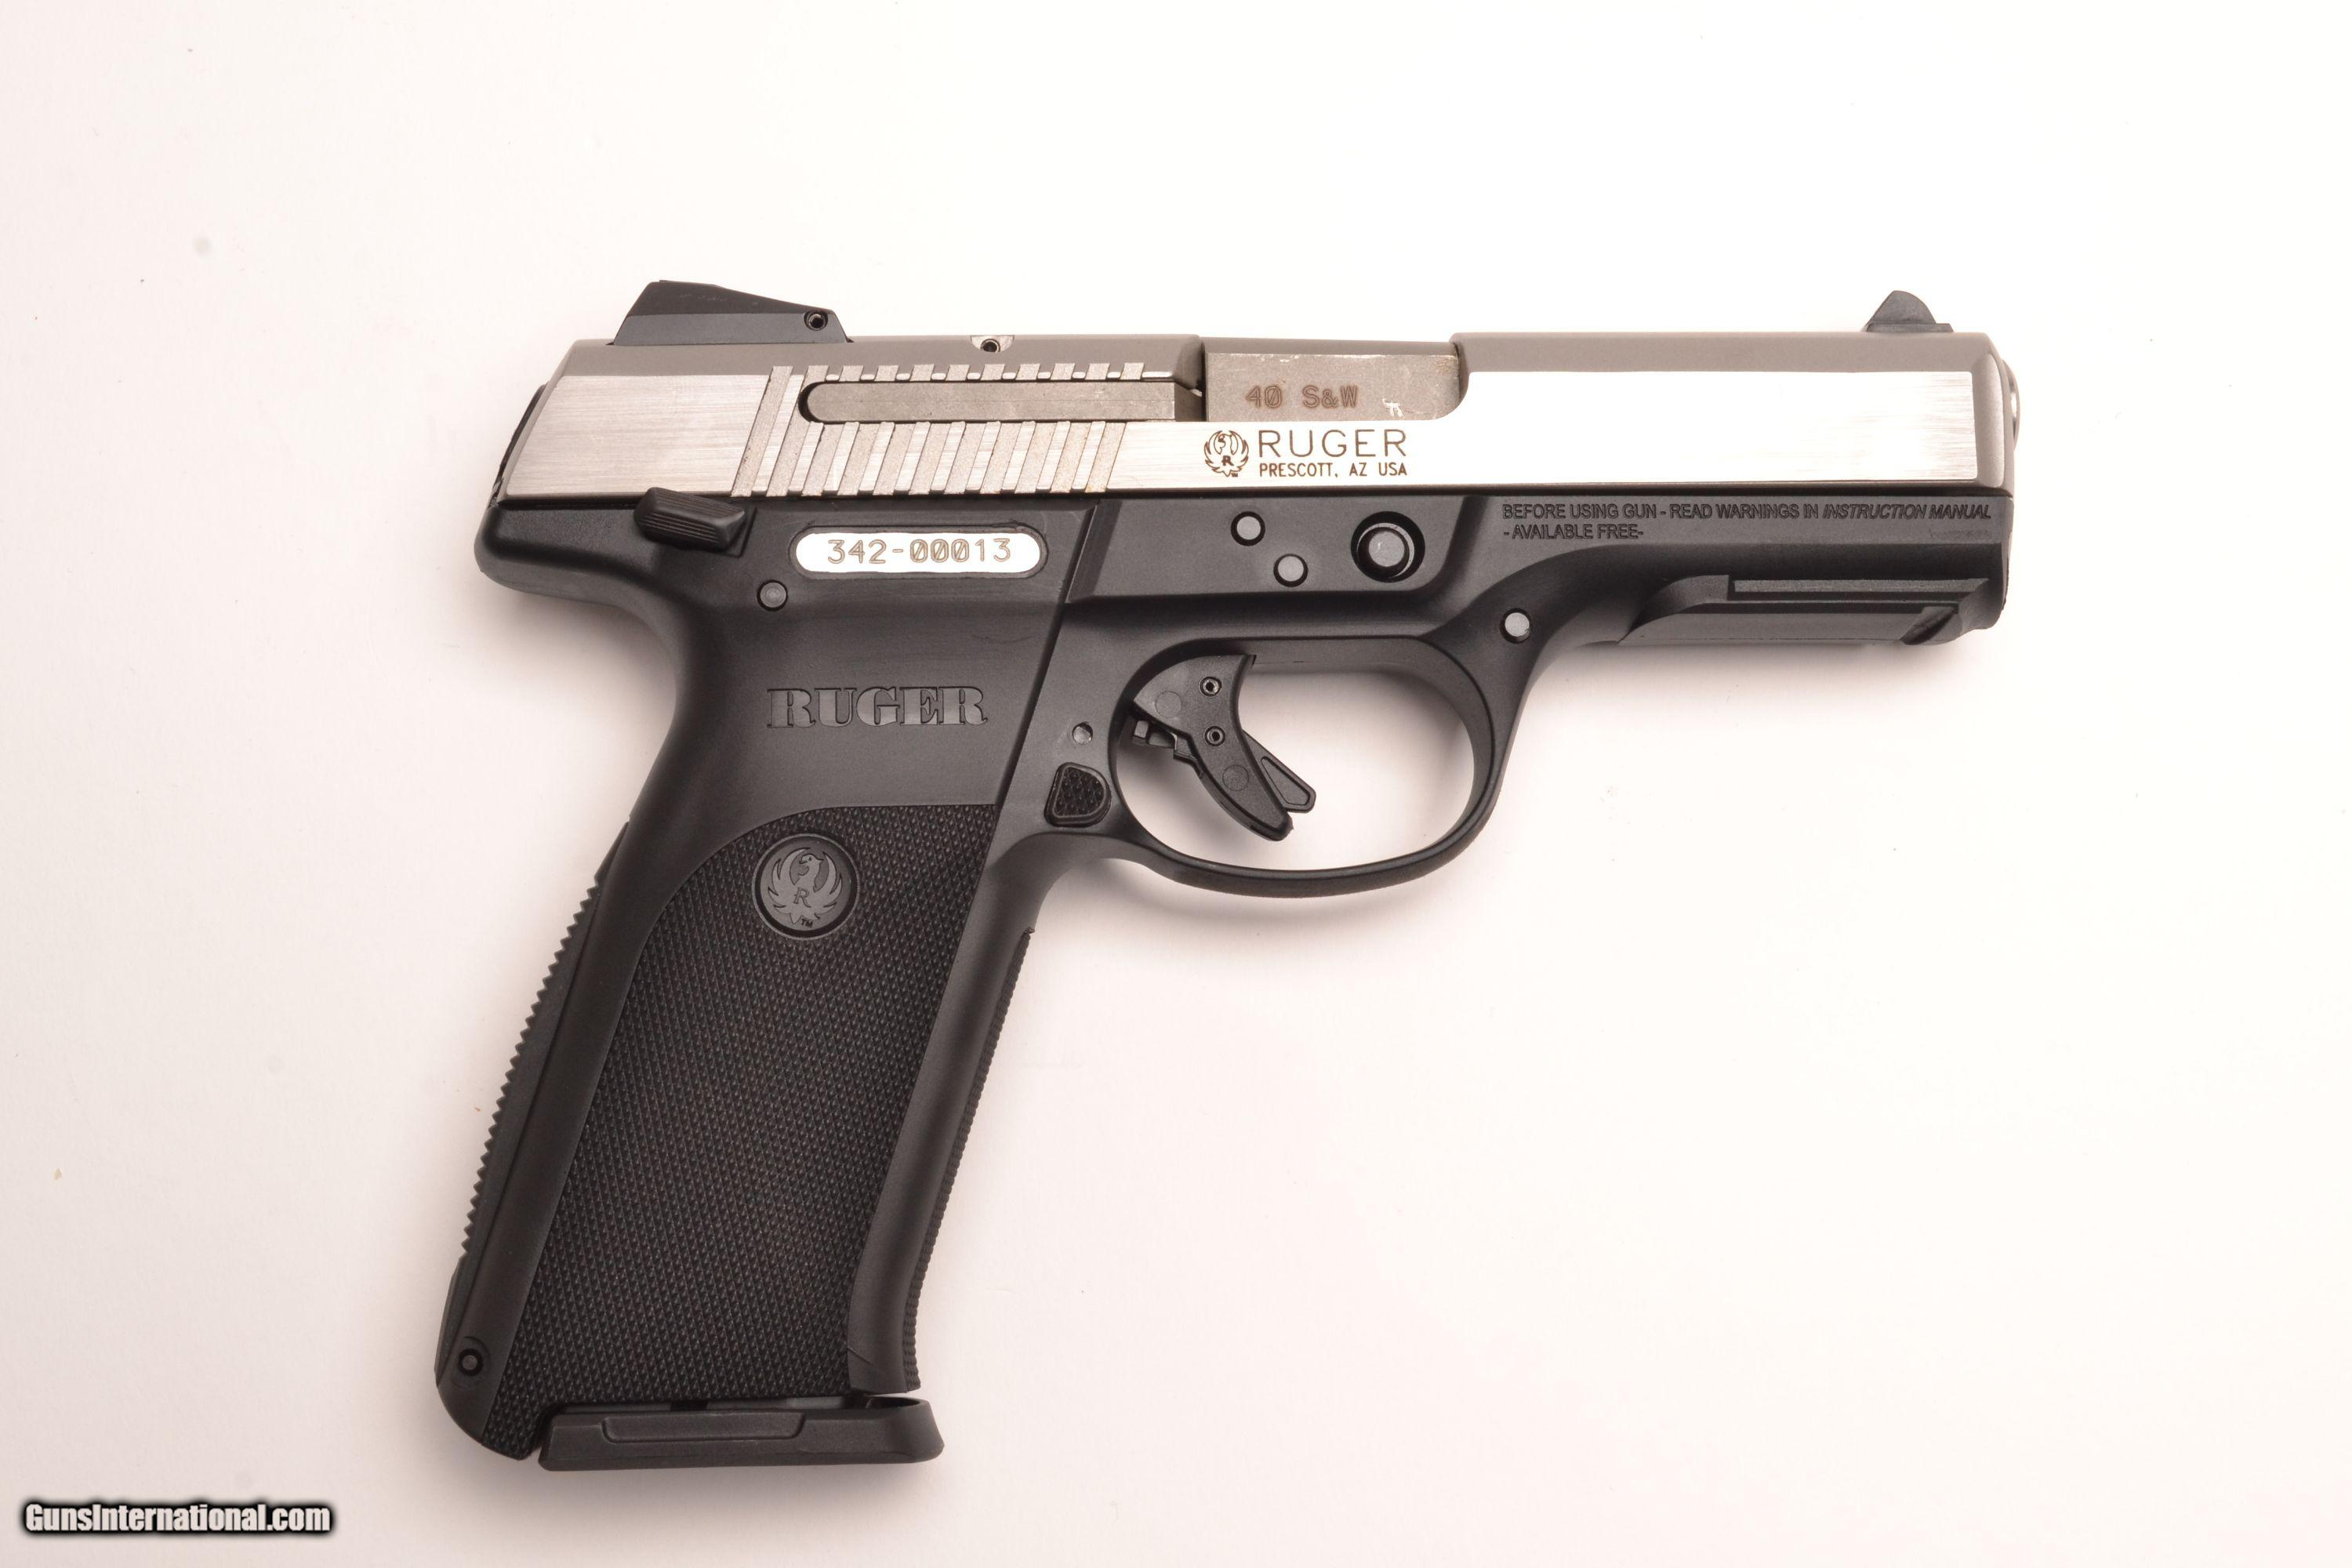 Ruger firearms serial number search | Serial number search